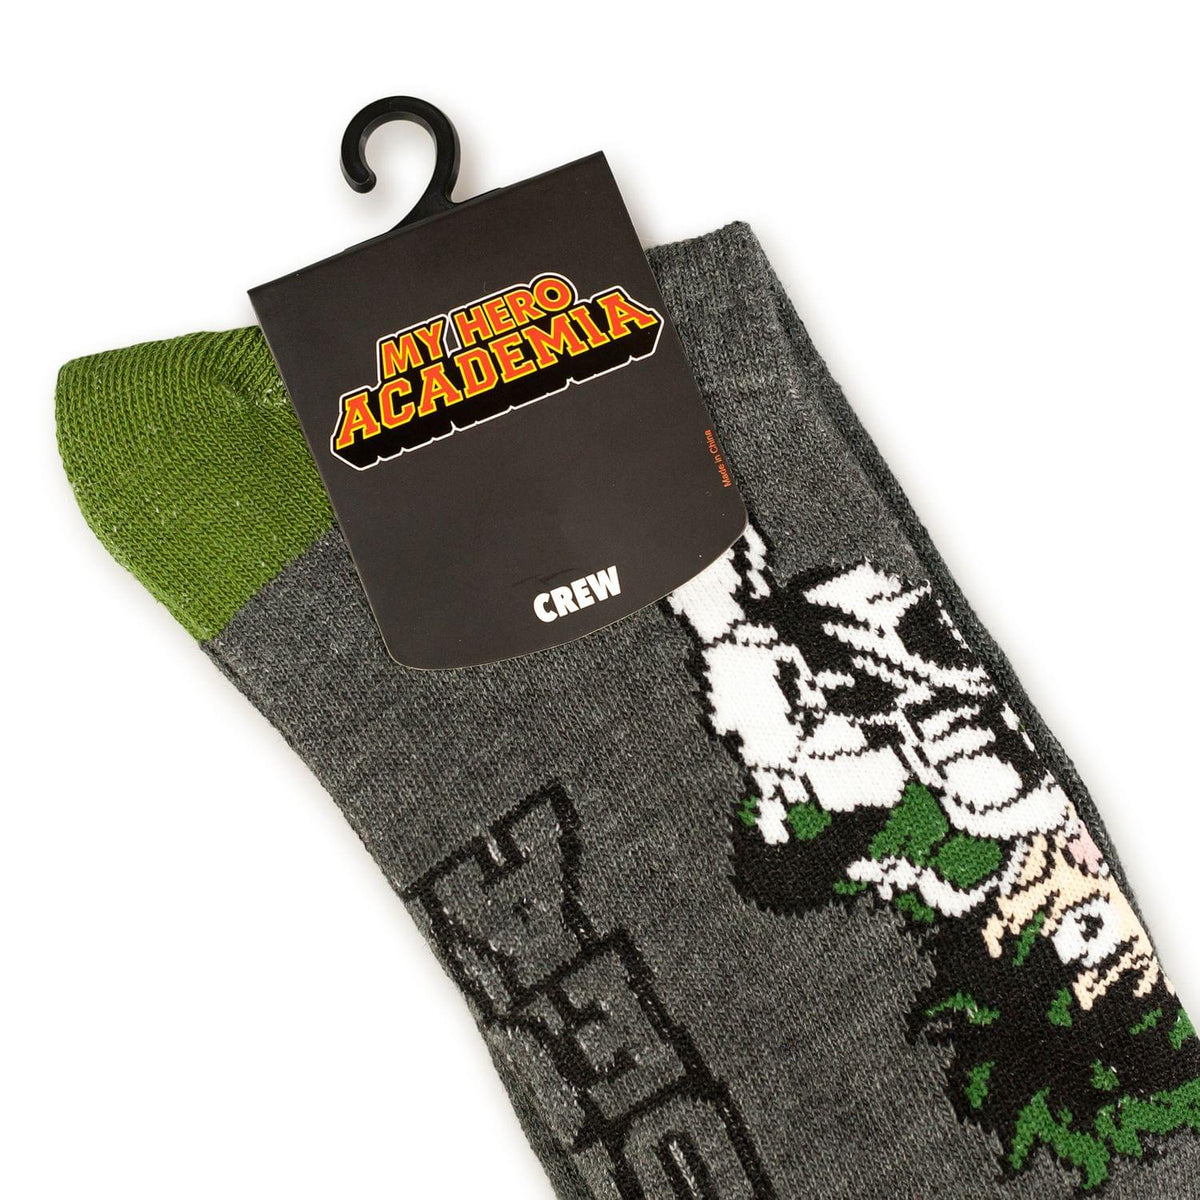 Bioworld My Hero Academia Anime Socks Featuring Deku | Adult Anime Crew Socks